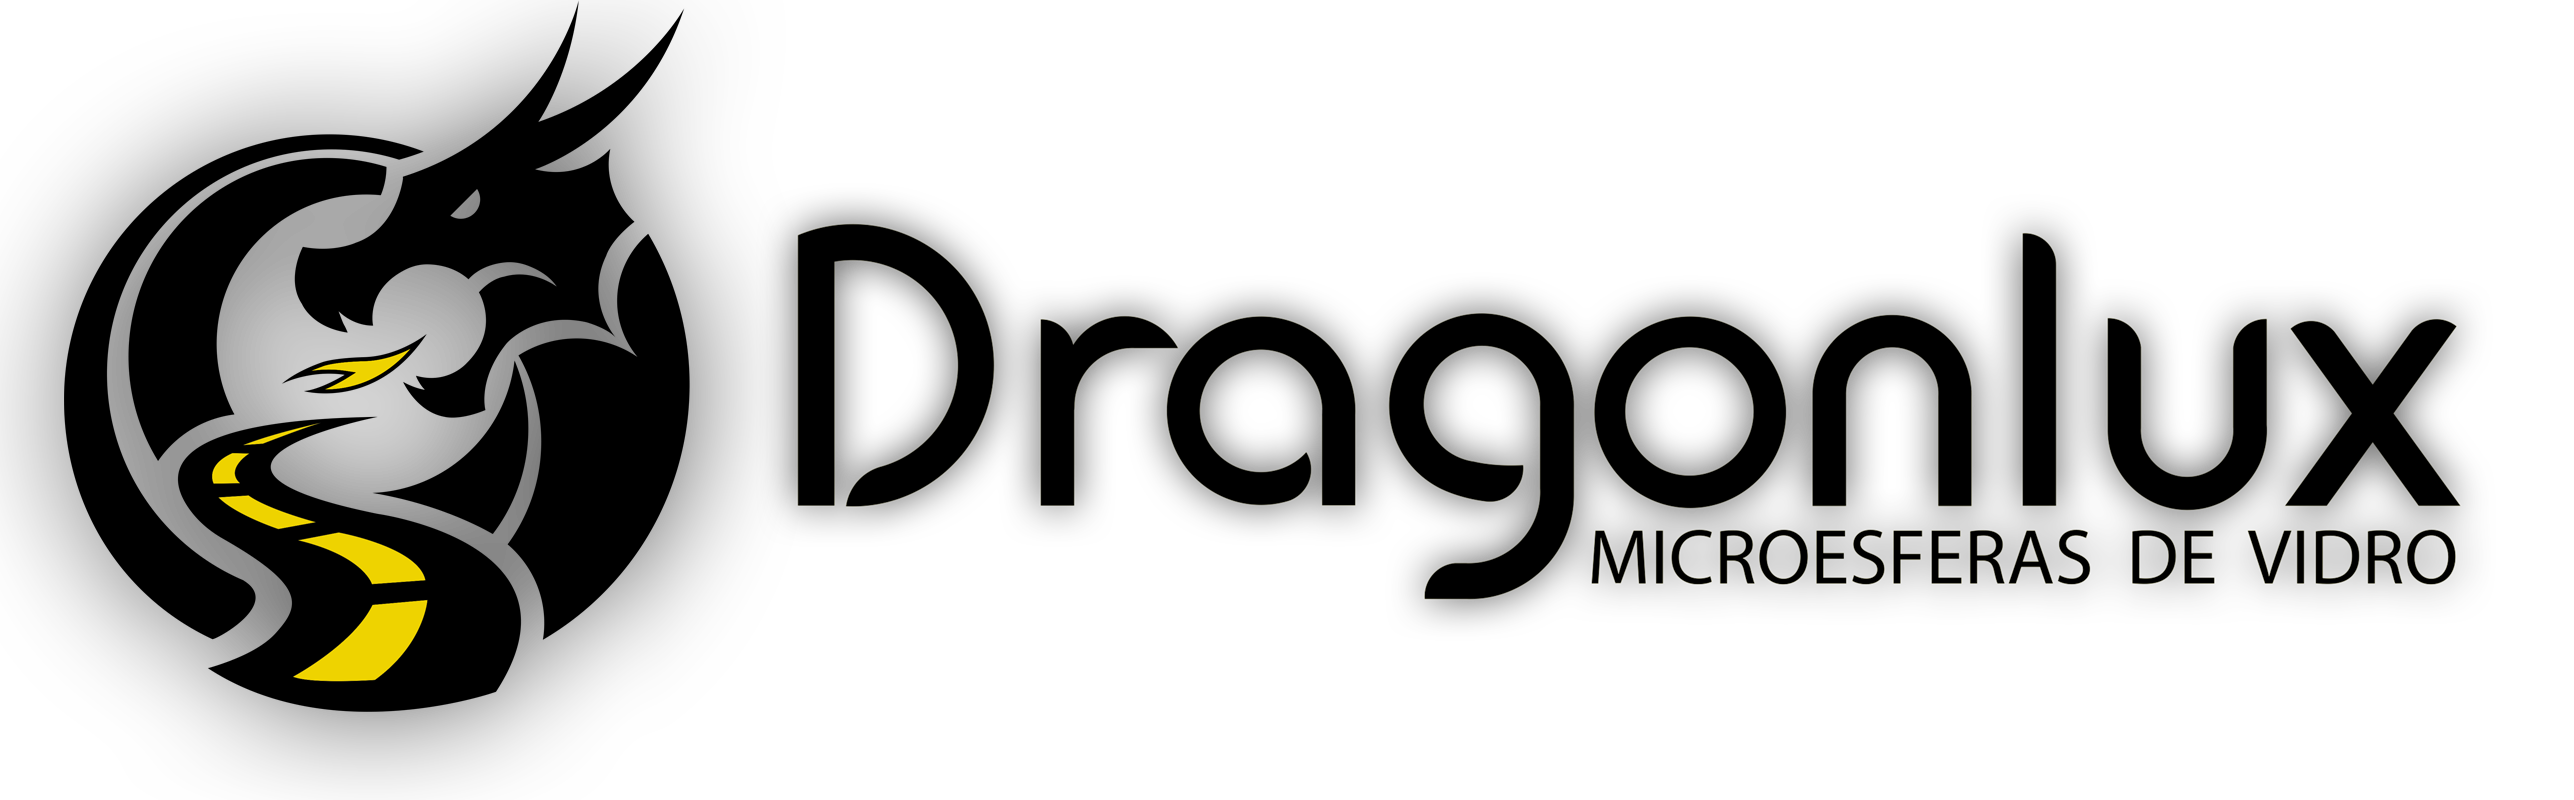 dragonlux logo-vertical